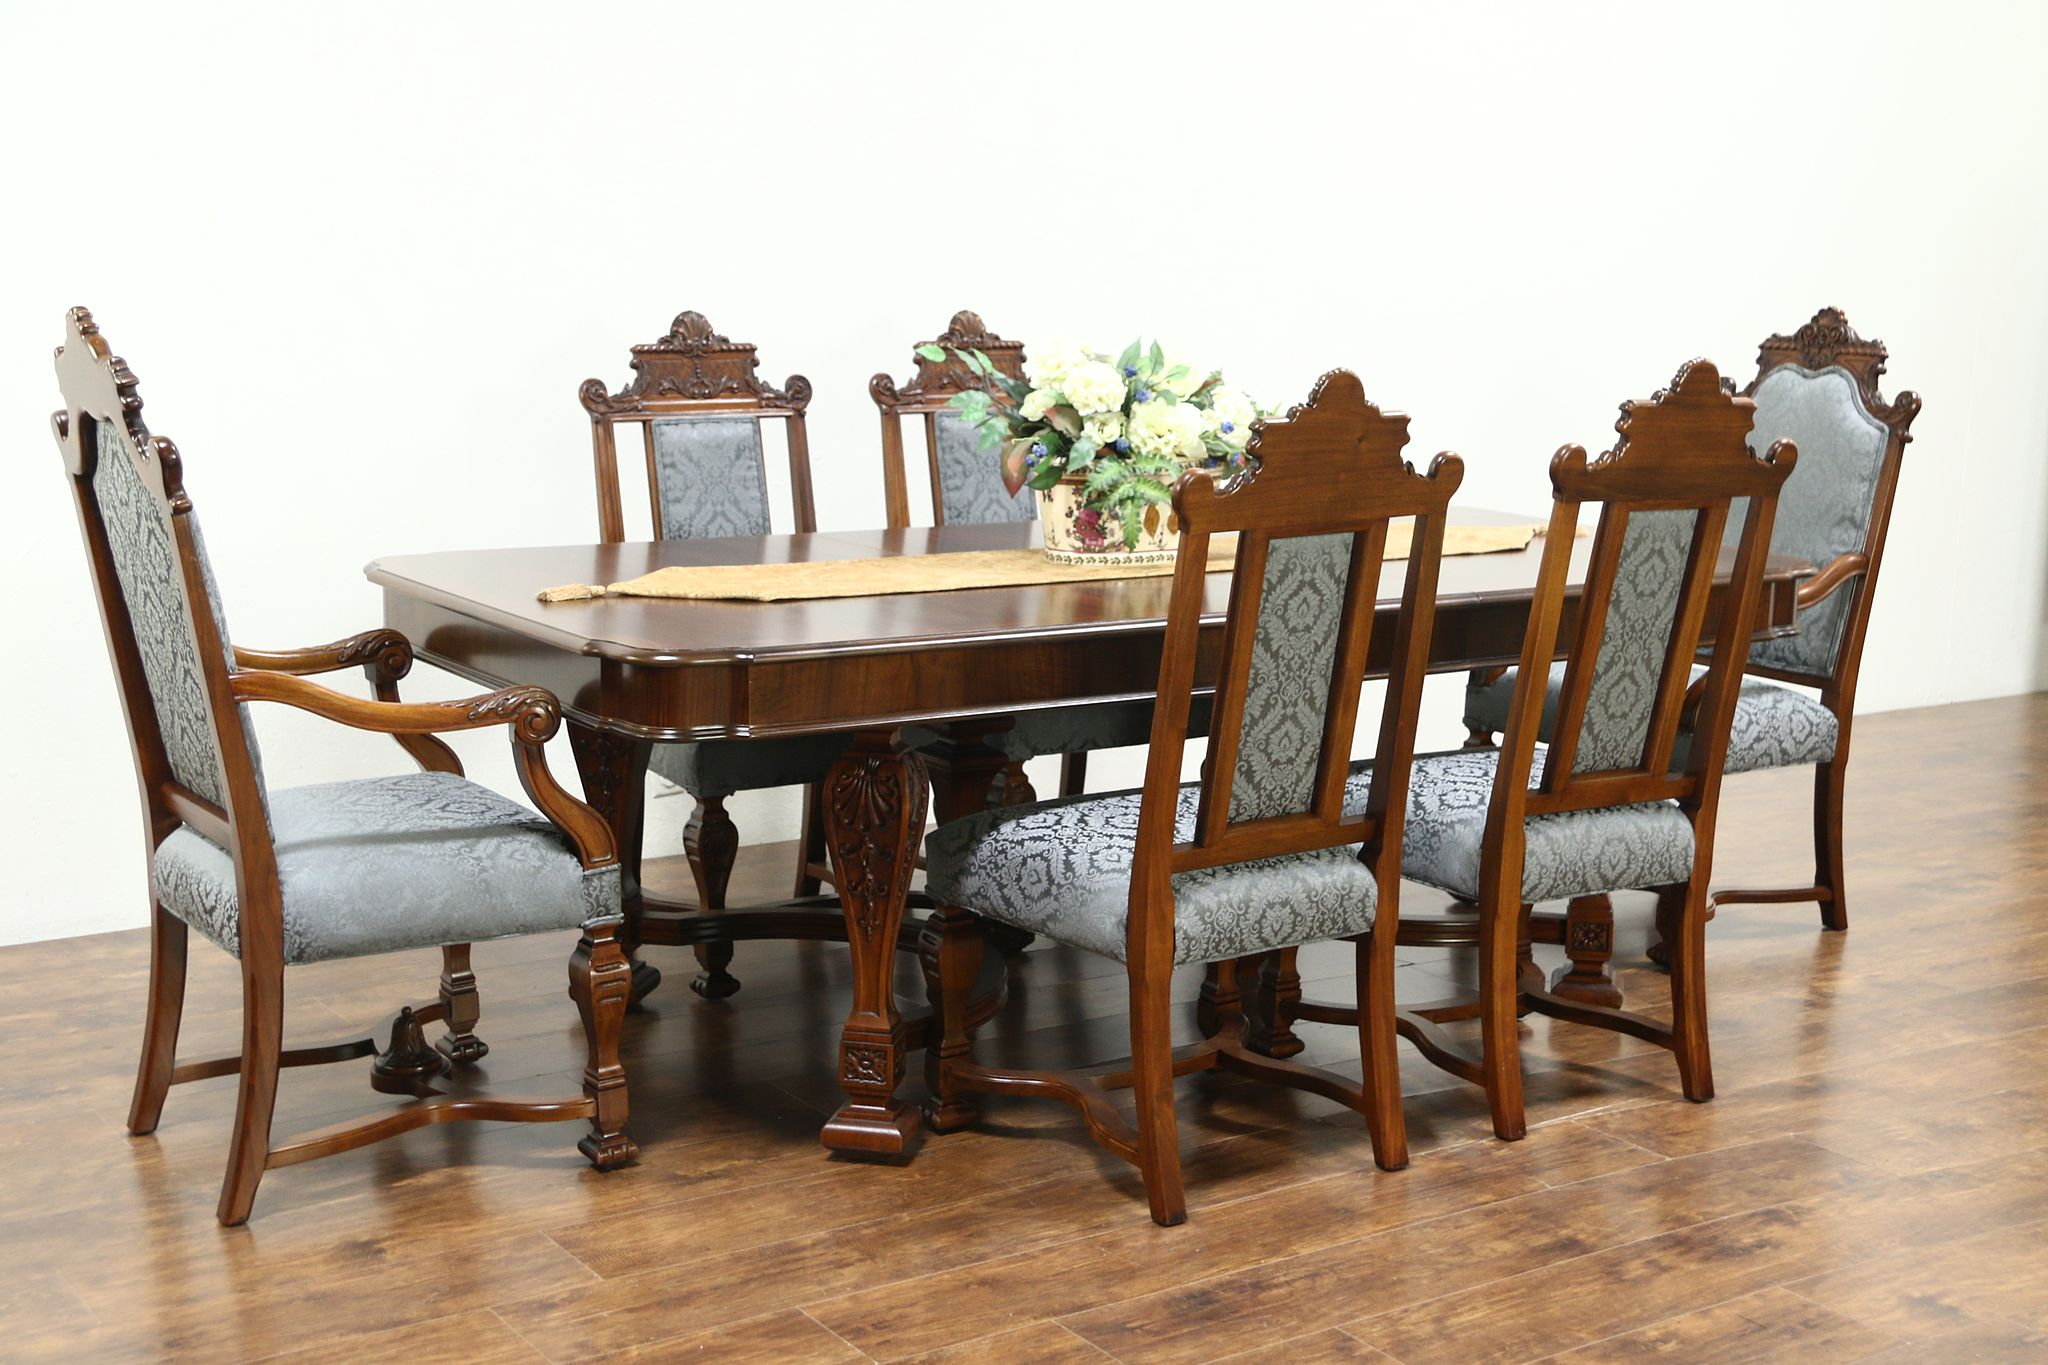 Renaissance Antique Dining Set Table, Antique Dining Room Table